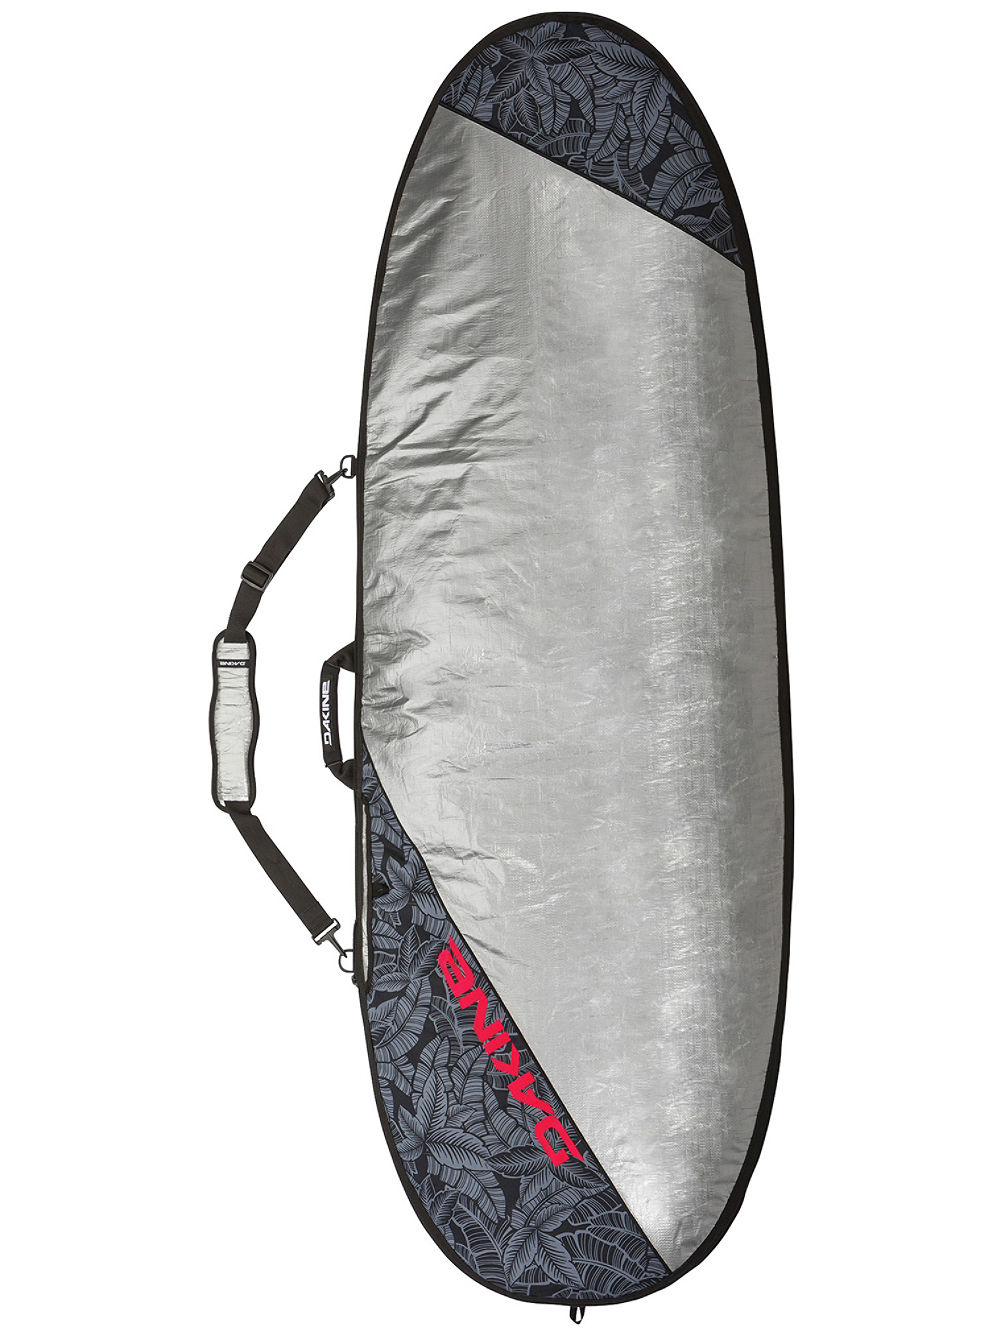 6.0 Surf Daylight-Hybrid Boardbag